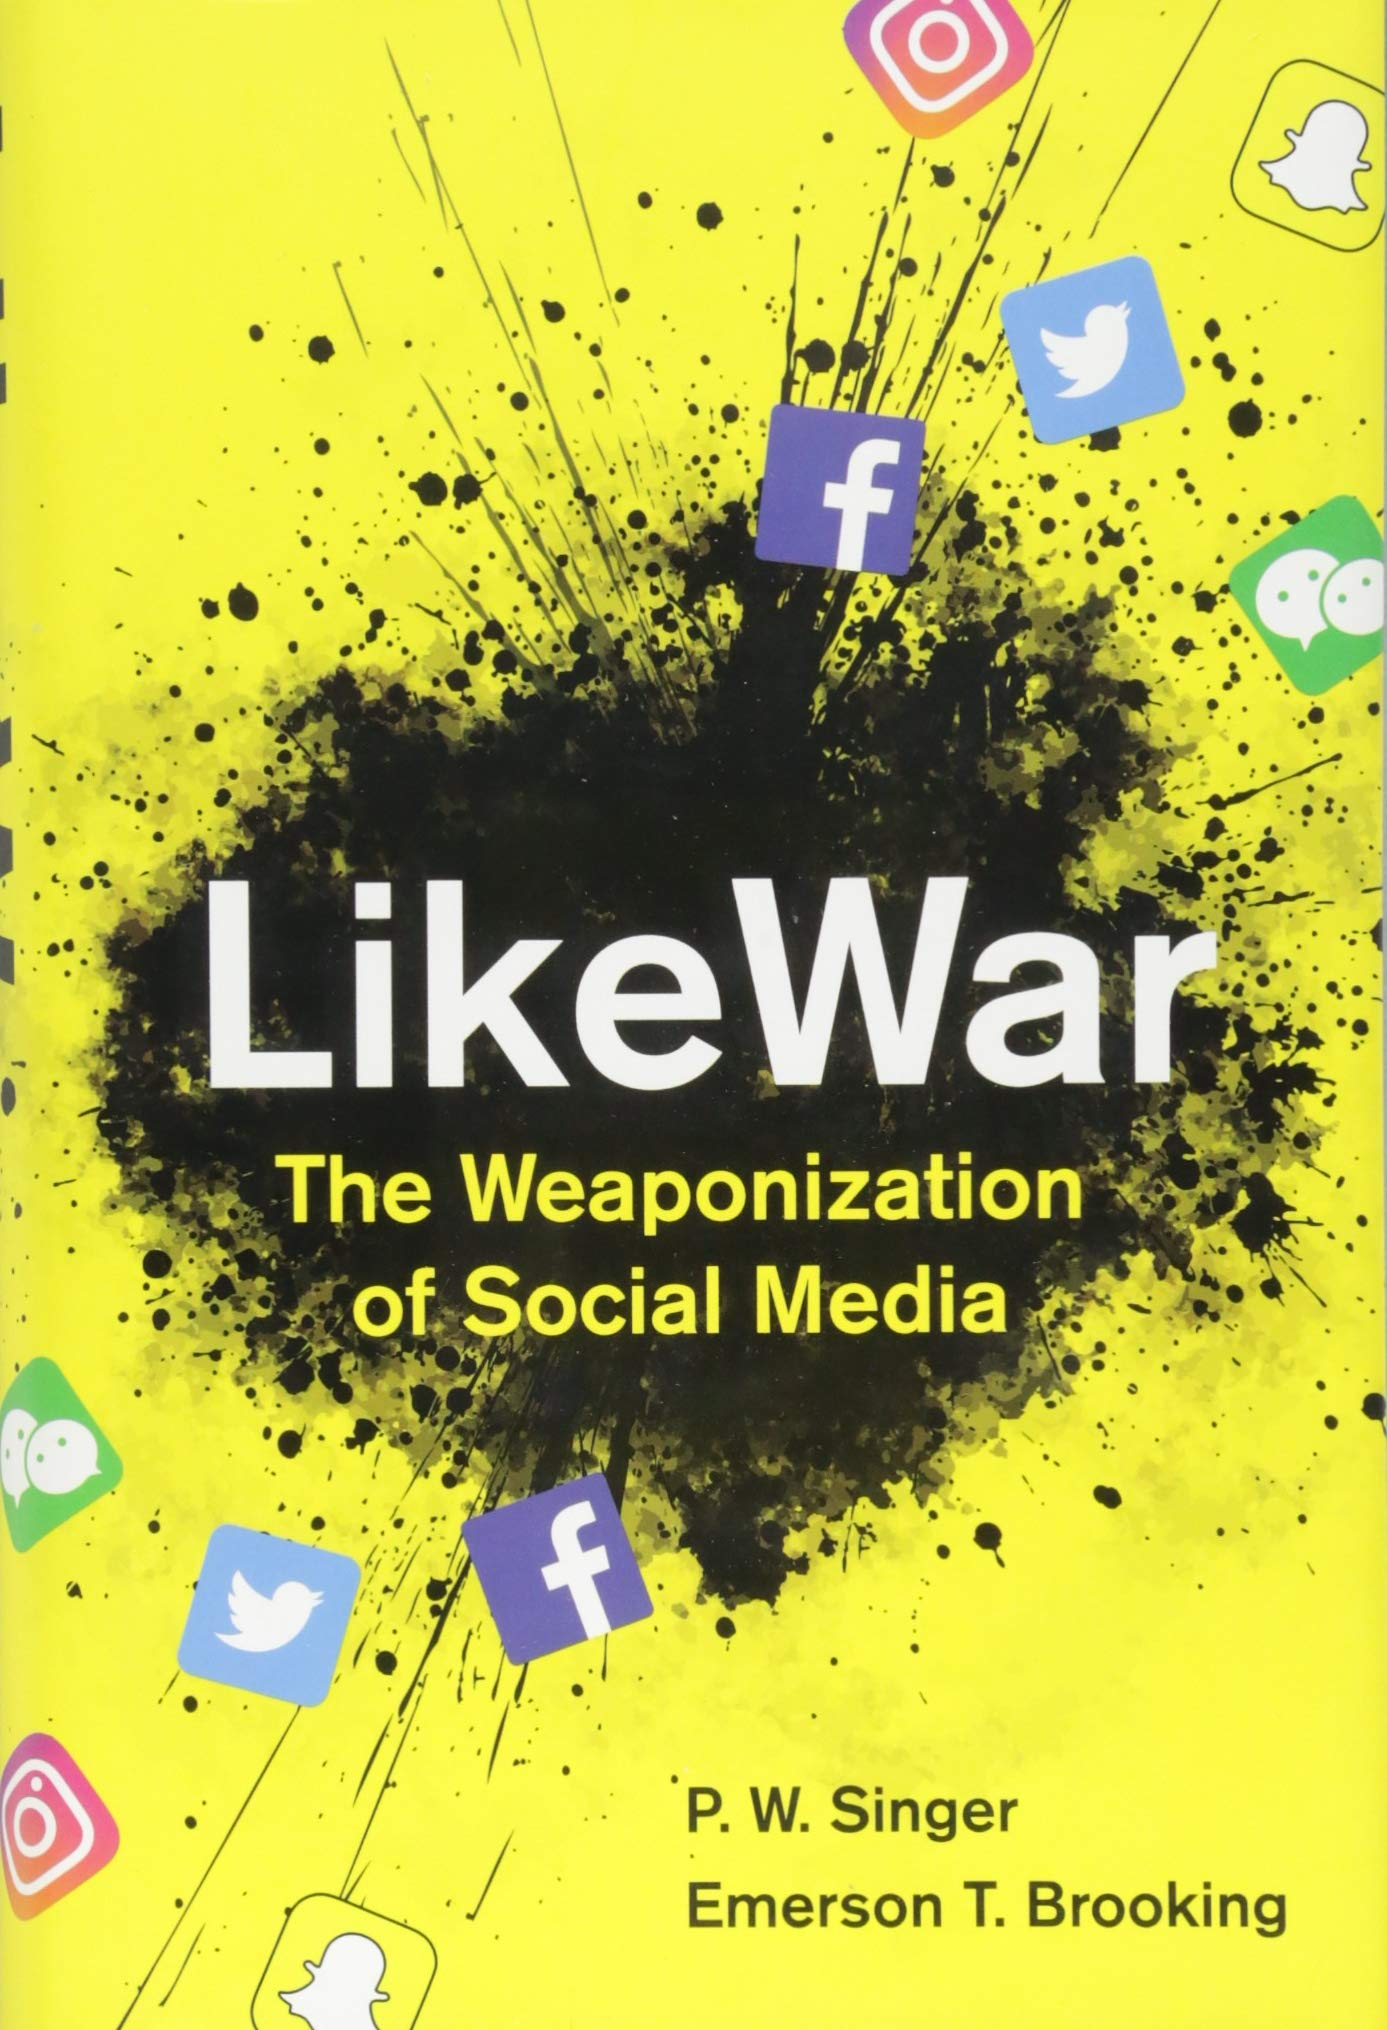 P. W. Singer and Emerson Brooking,   LikeWar: The Weaponization of Social Media   (Eamon Dolan/Houghton Mifflin Harcourt, 2018)